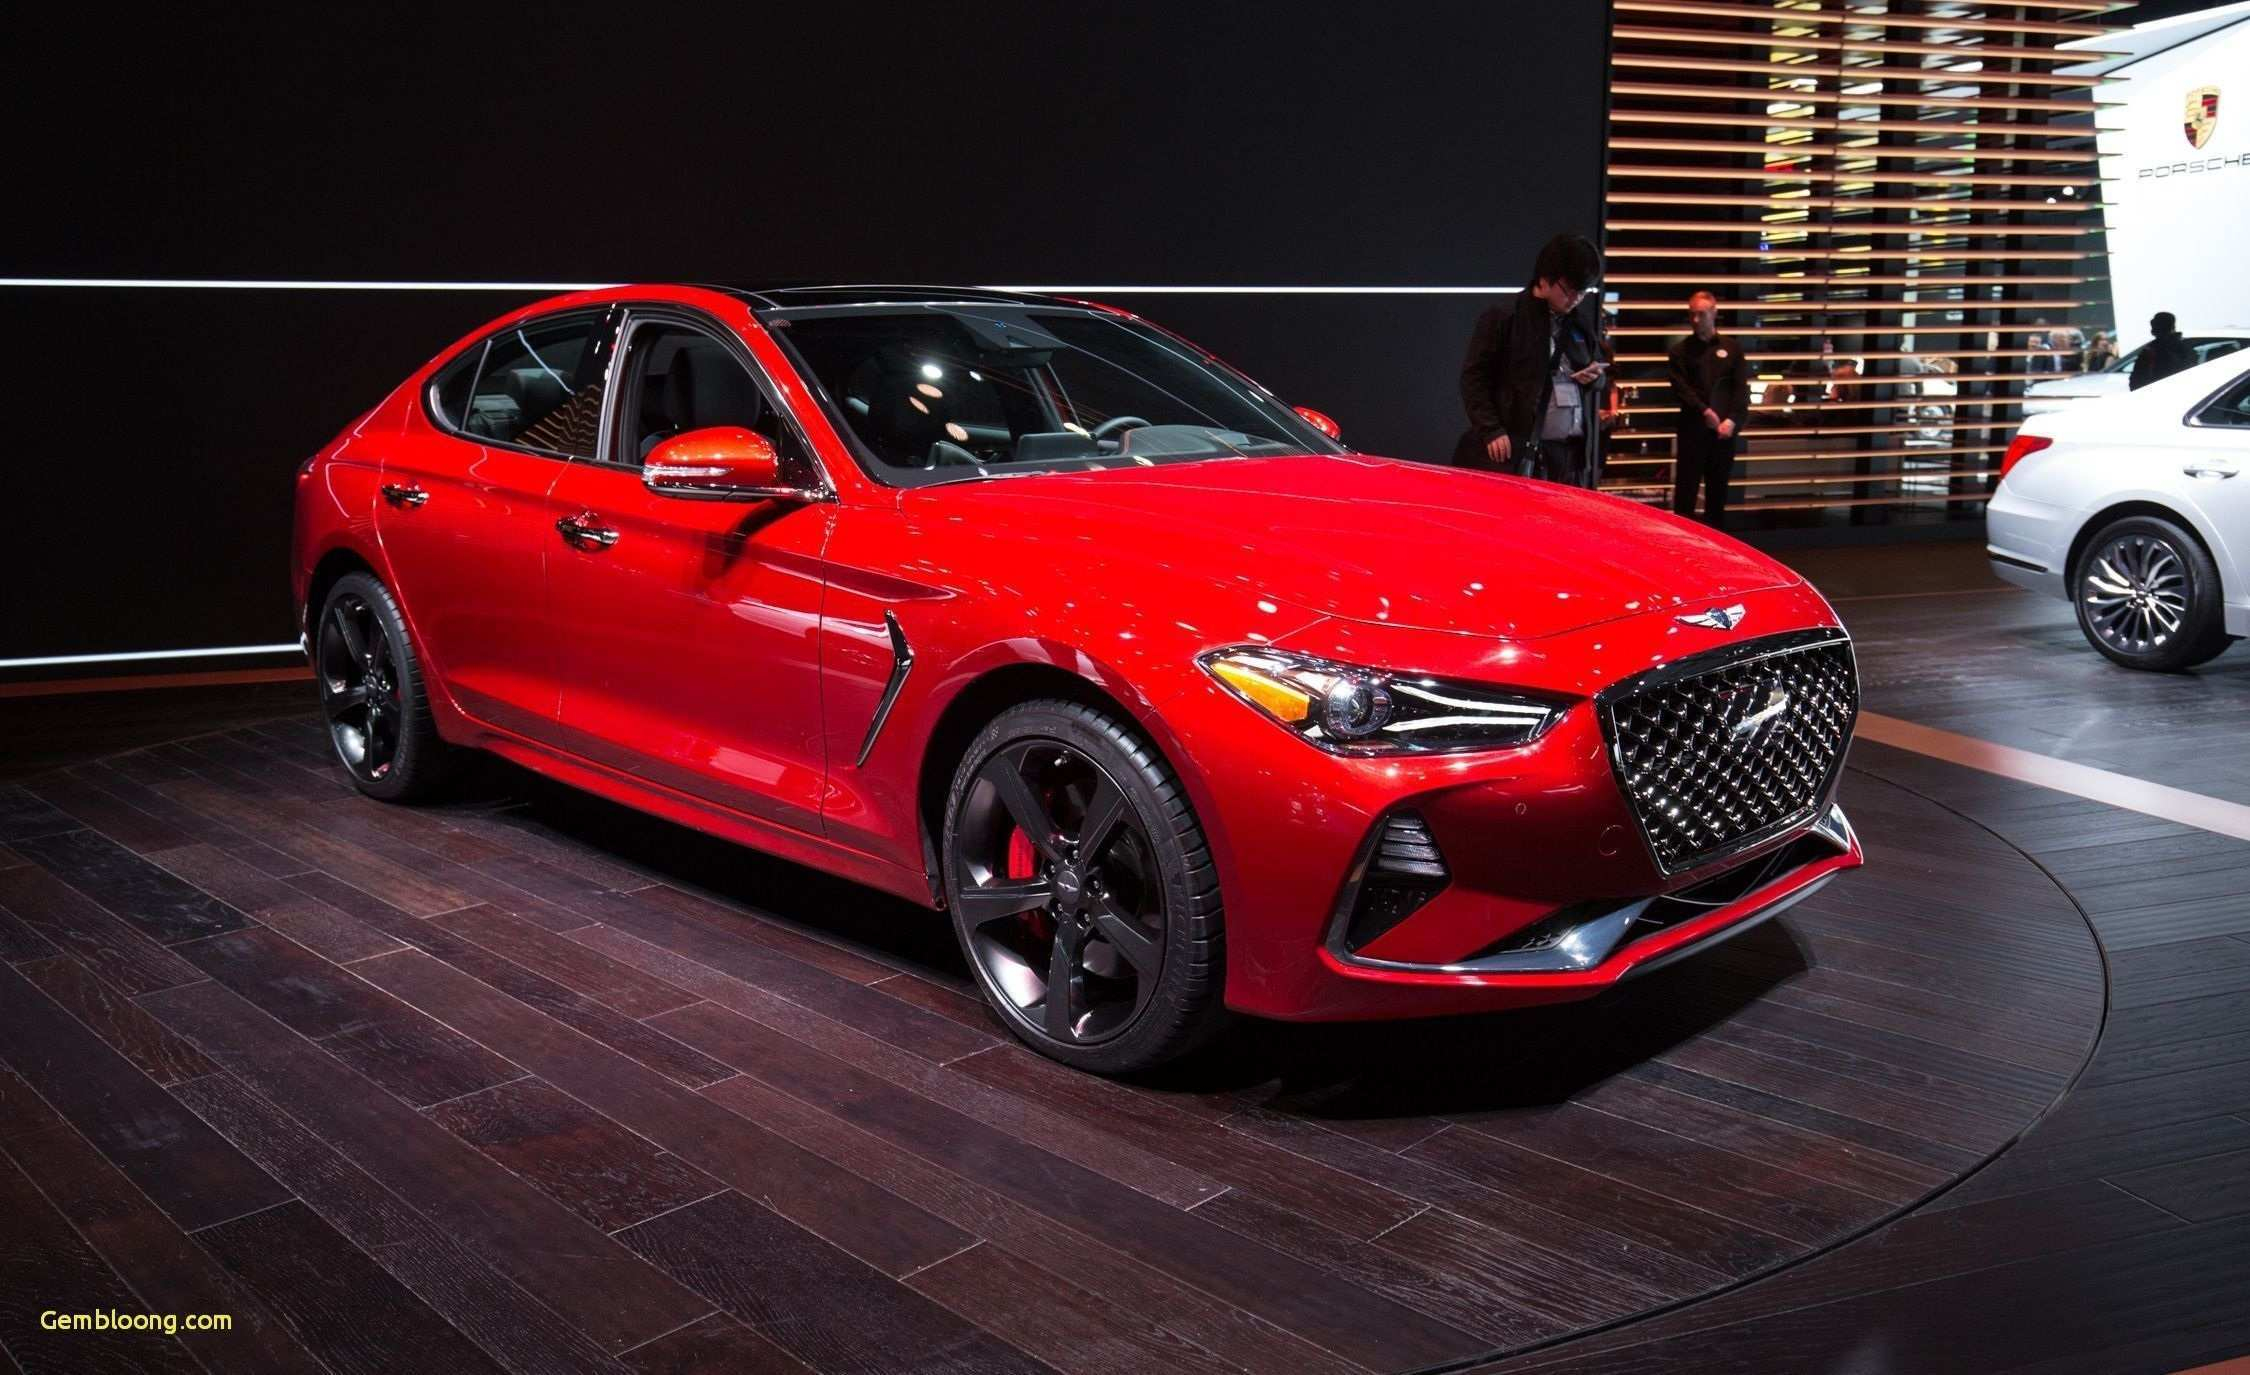 76 All New Hyundai Genesis Coupe 2020 Price And Release Date